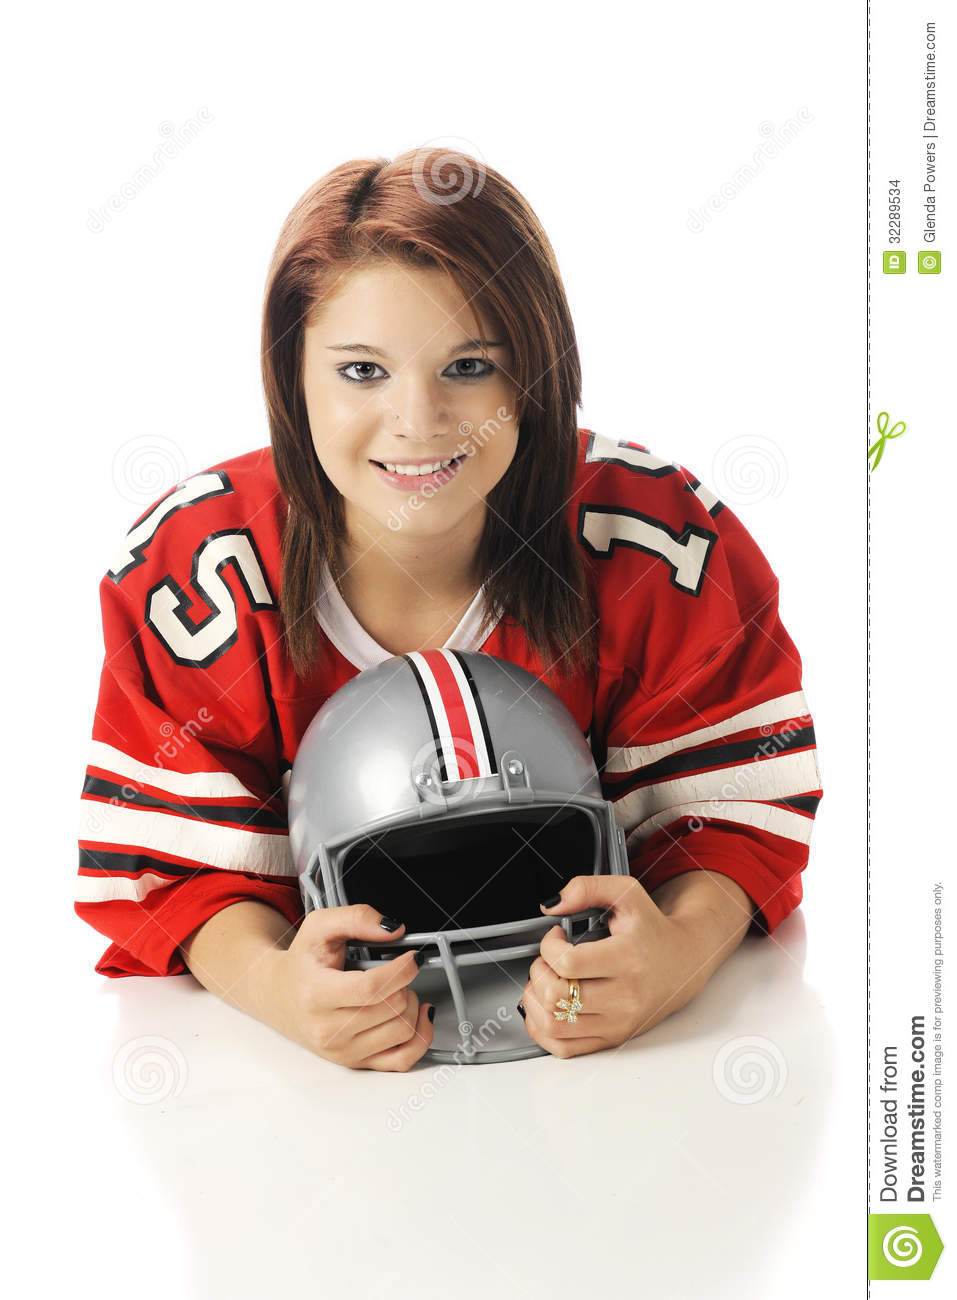 keral girl porn photo